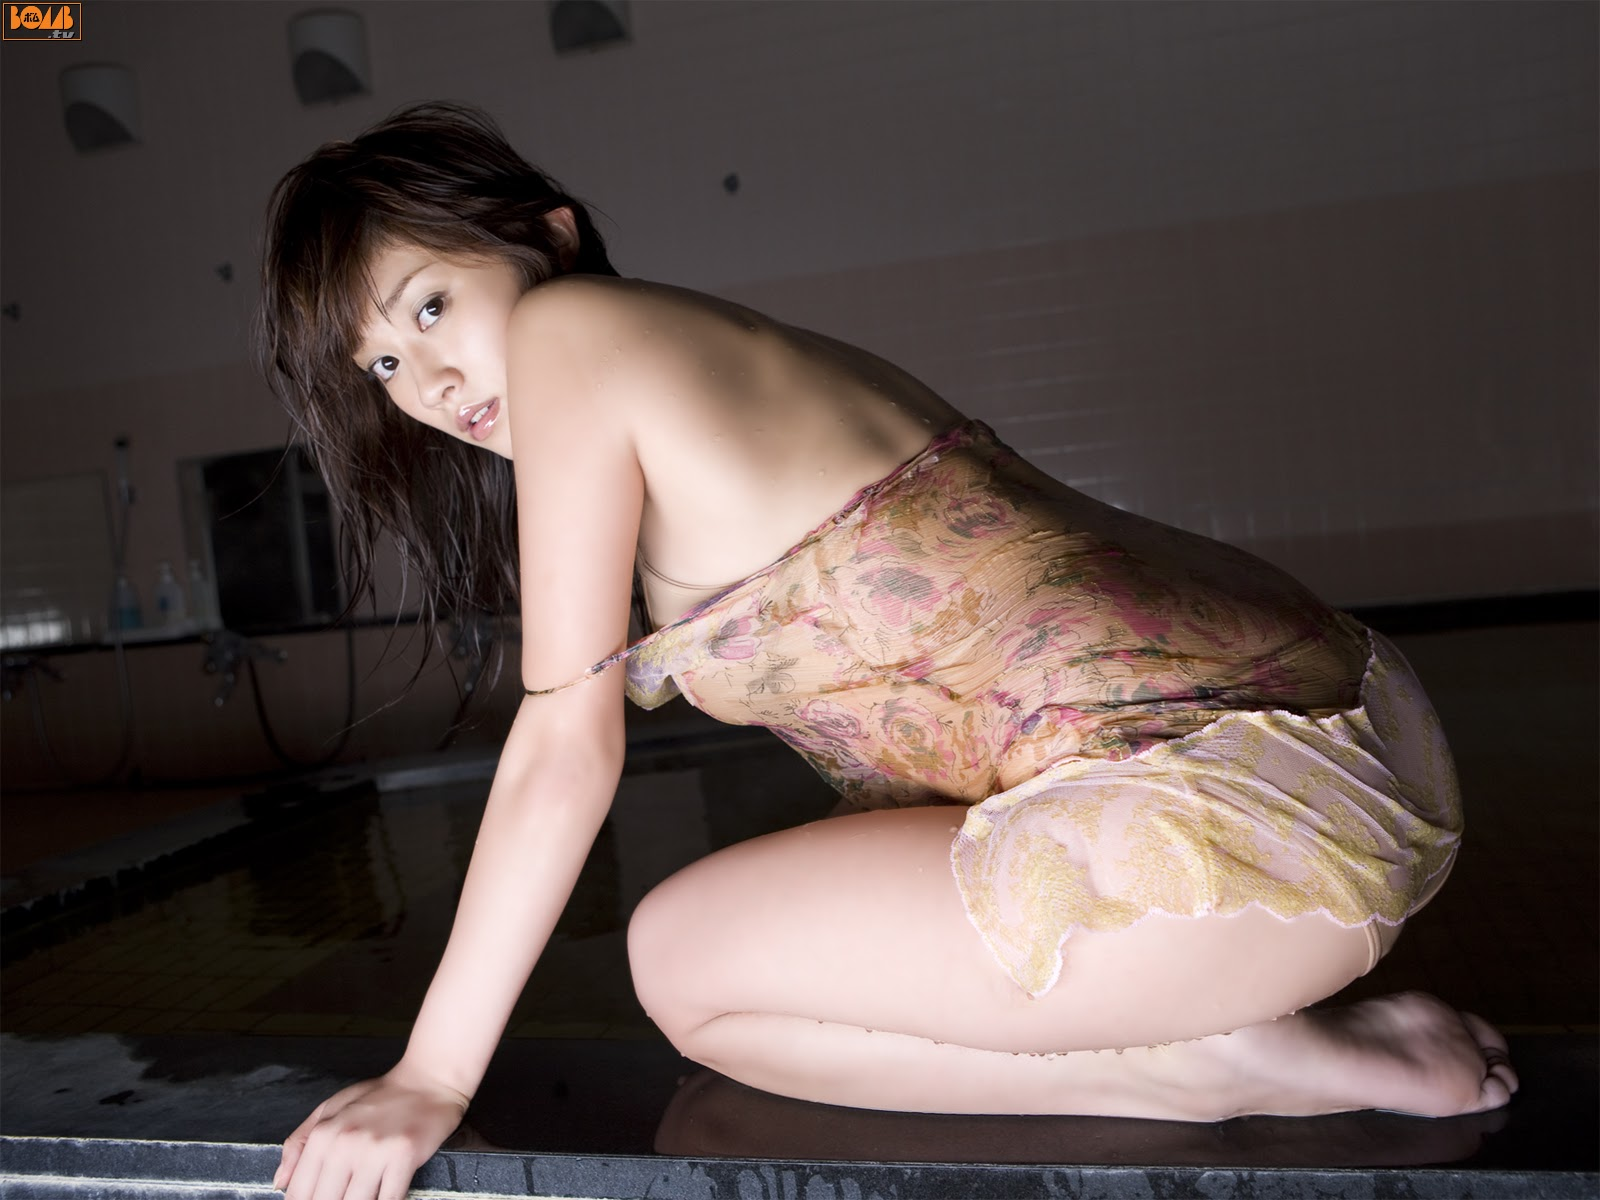 All kinds of redweathered skin sweaty skin smiles in the morning light Mikie Hara029